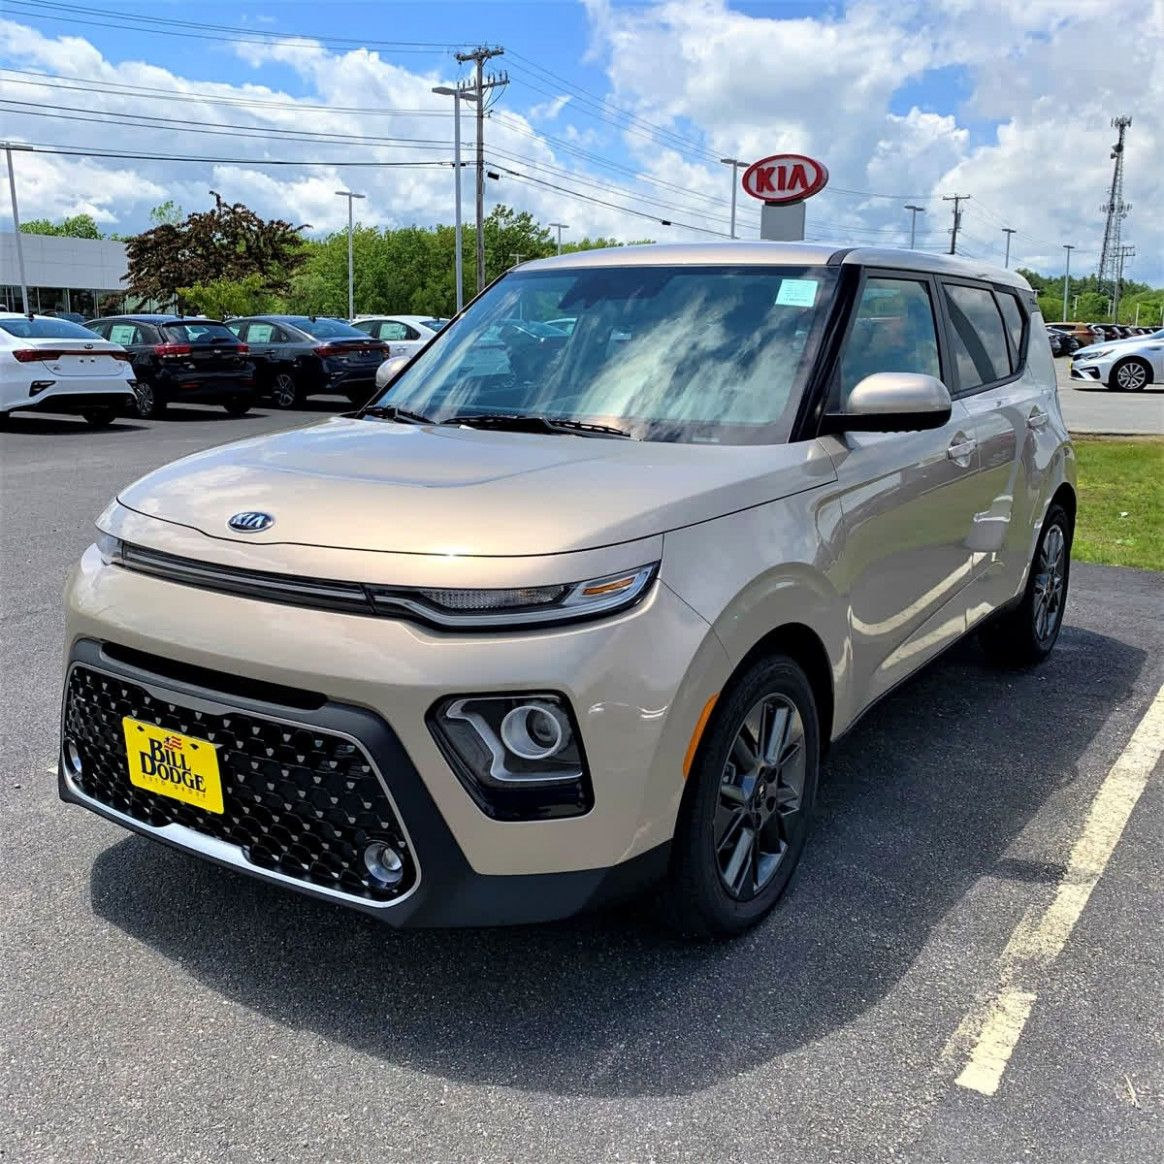 2020 Kia Soul Colors In 2020 Kia Soul Kia Kia Soul Interior